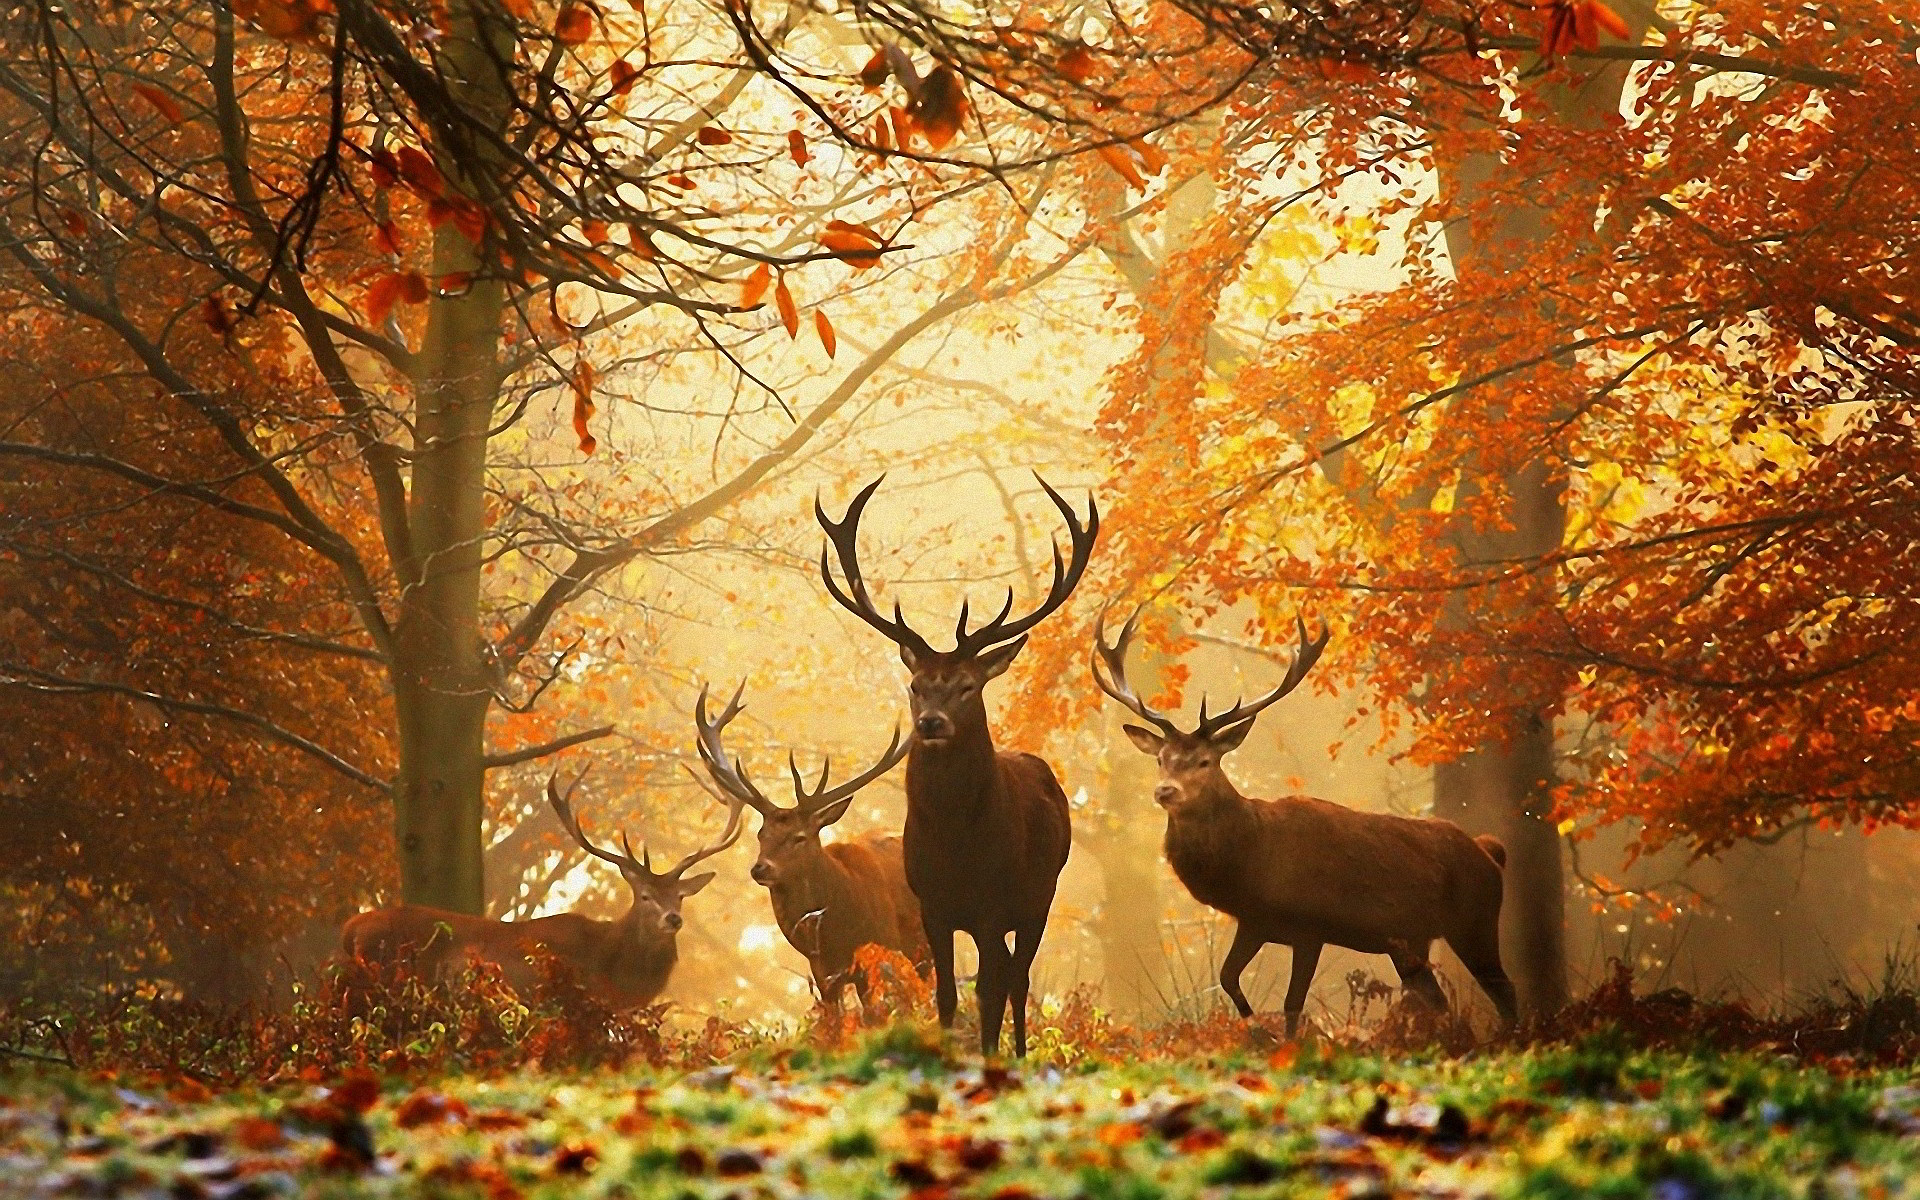 Deers in Autumn Forest 1166.52 Kb